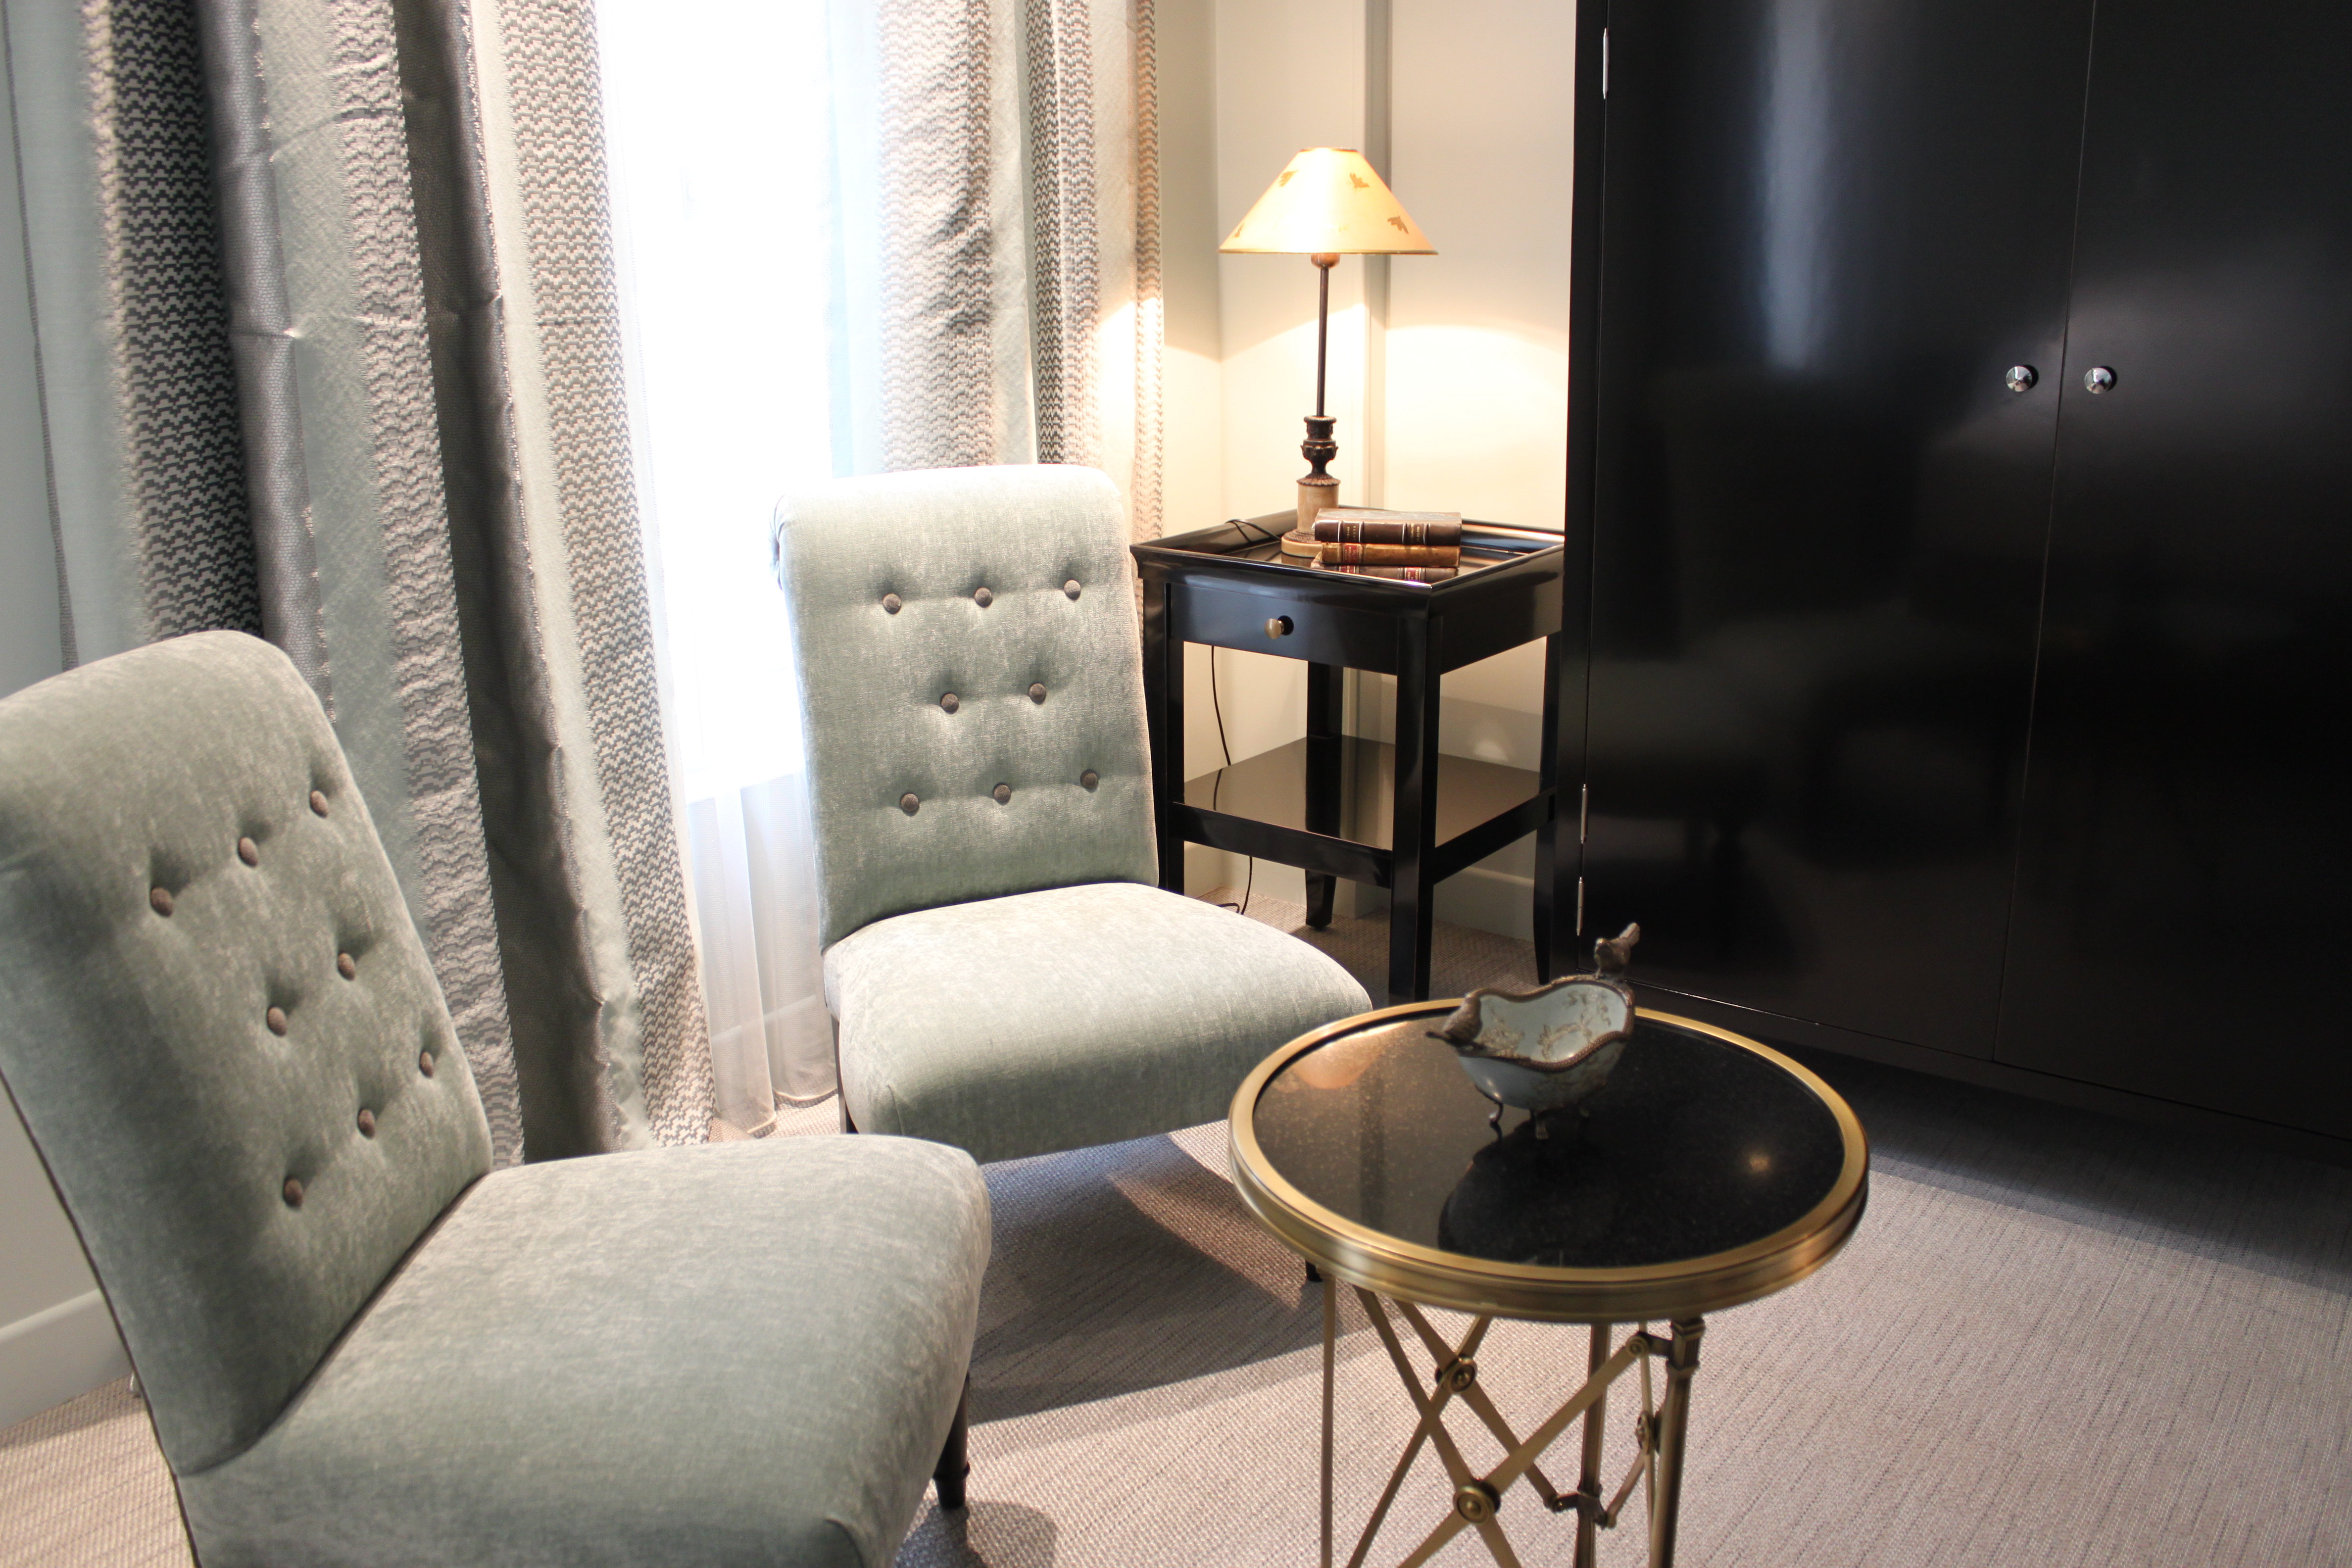 My Home In Paris hotel my home – great prices at hotel info